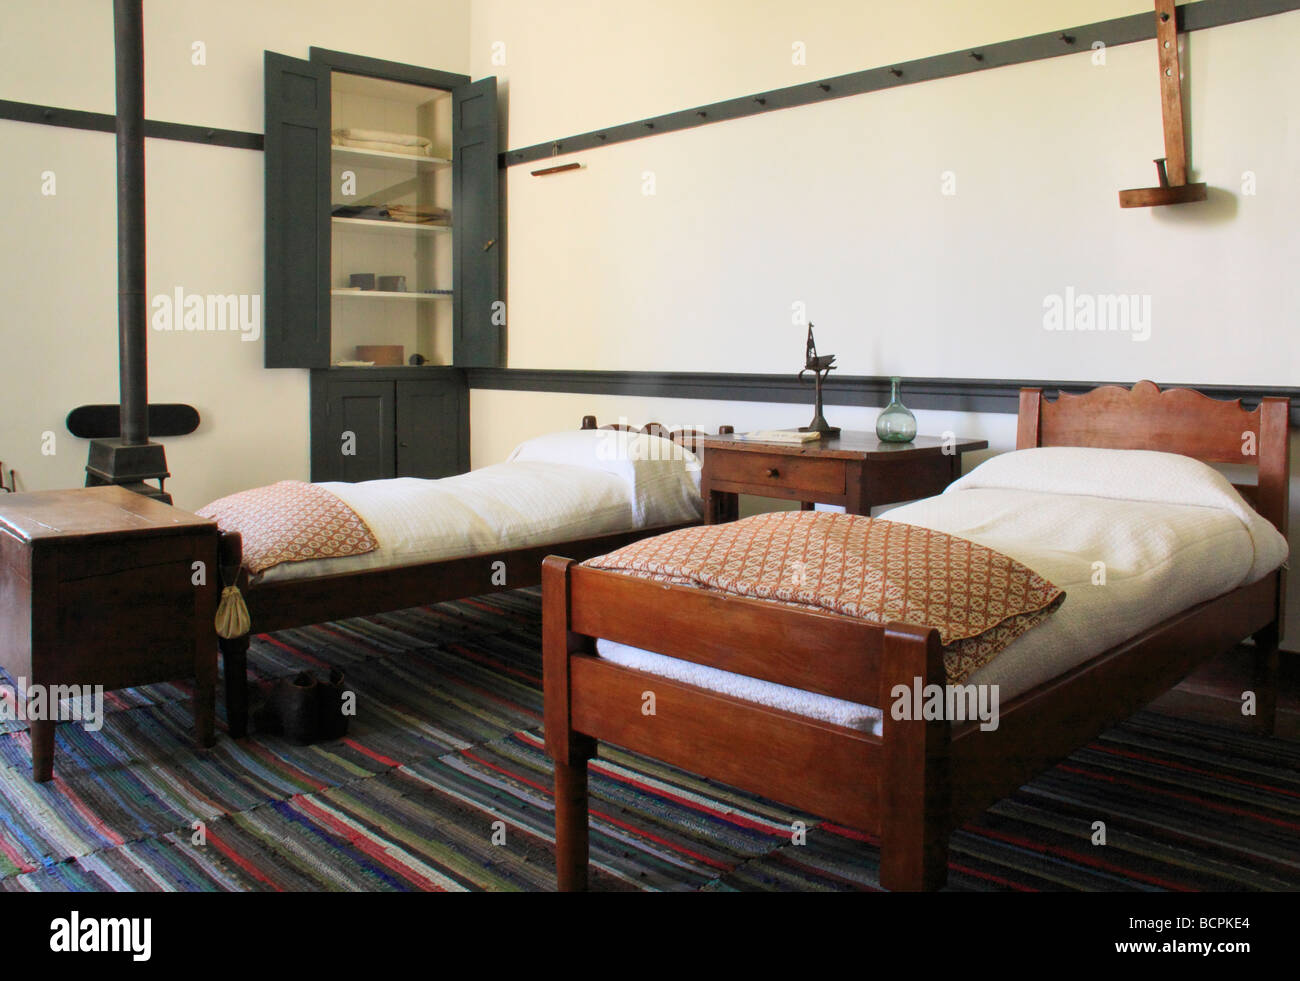 Shaker Bedroom Bed Stockfotos & Shaker Bedroom Bed Bilder - Alamy